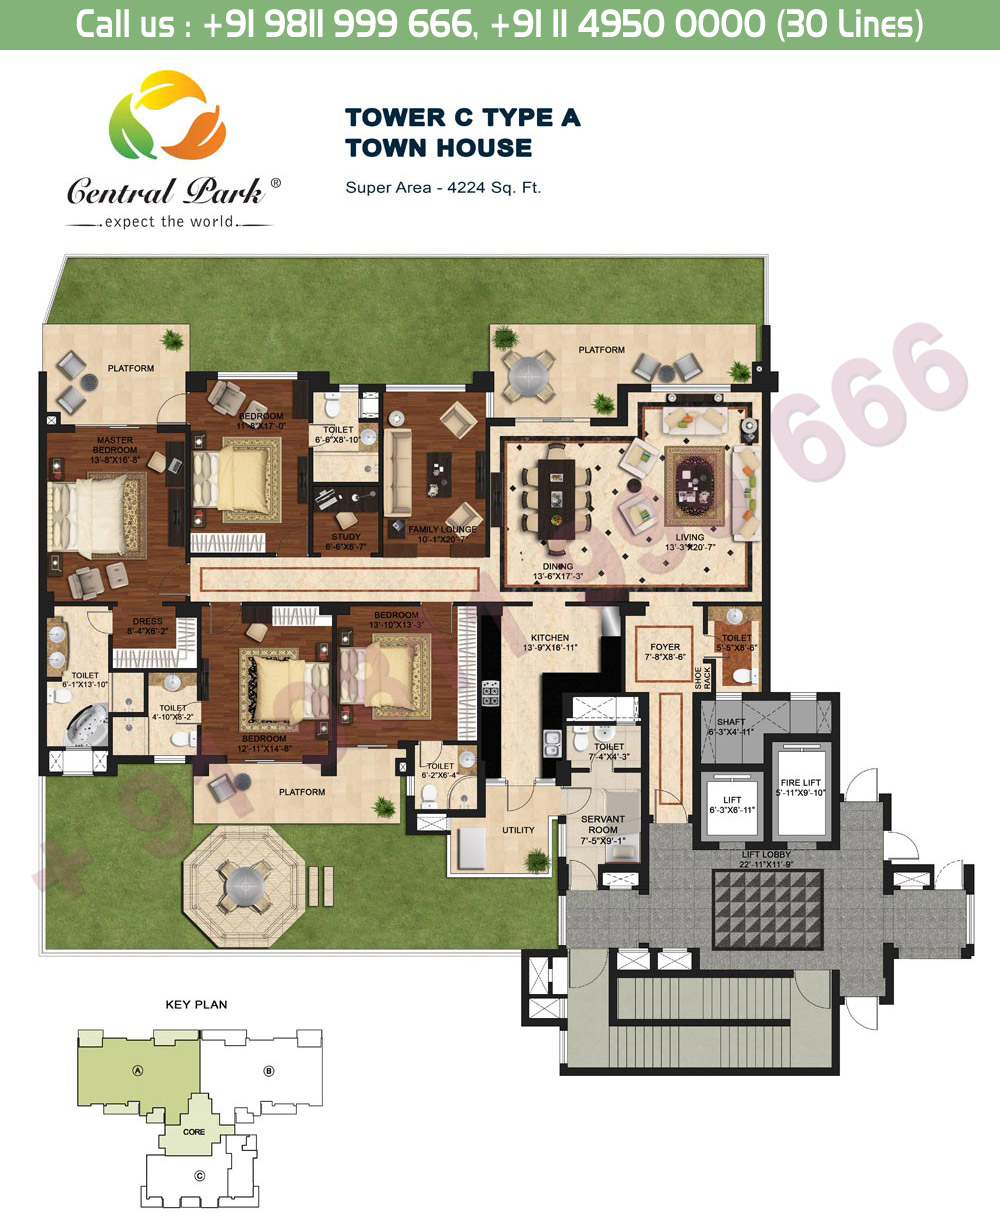 Tower - C, Type - A: 4224 Sq. Ft